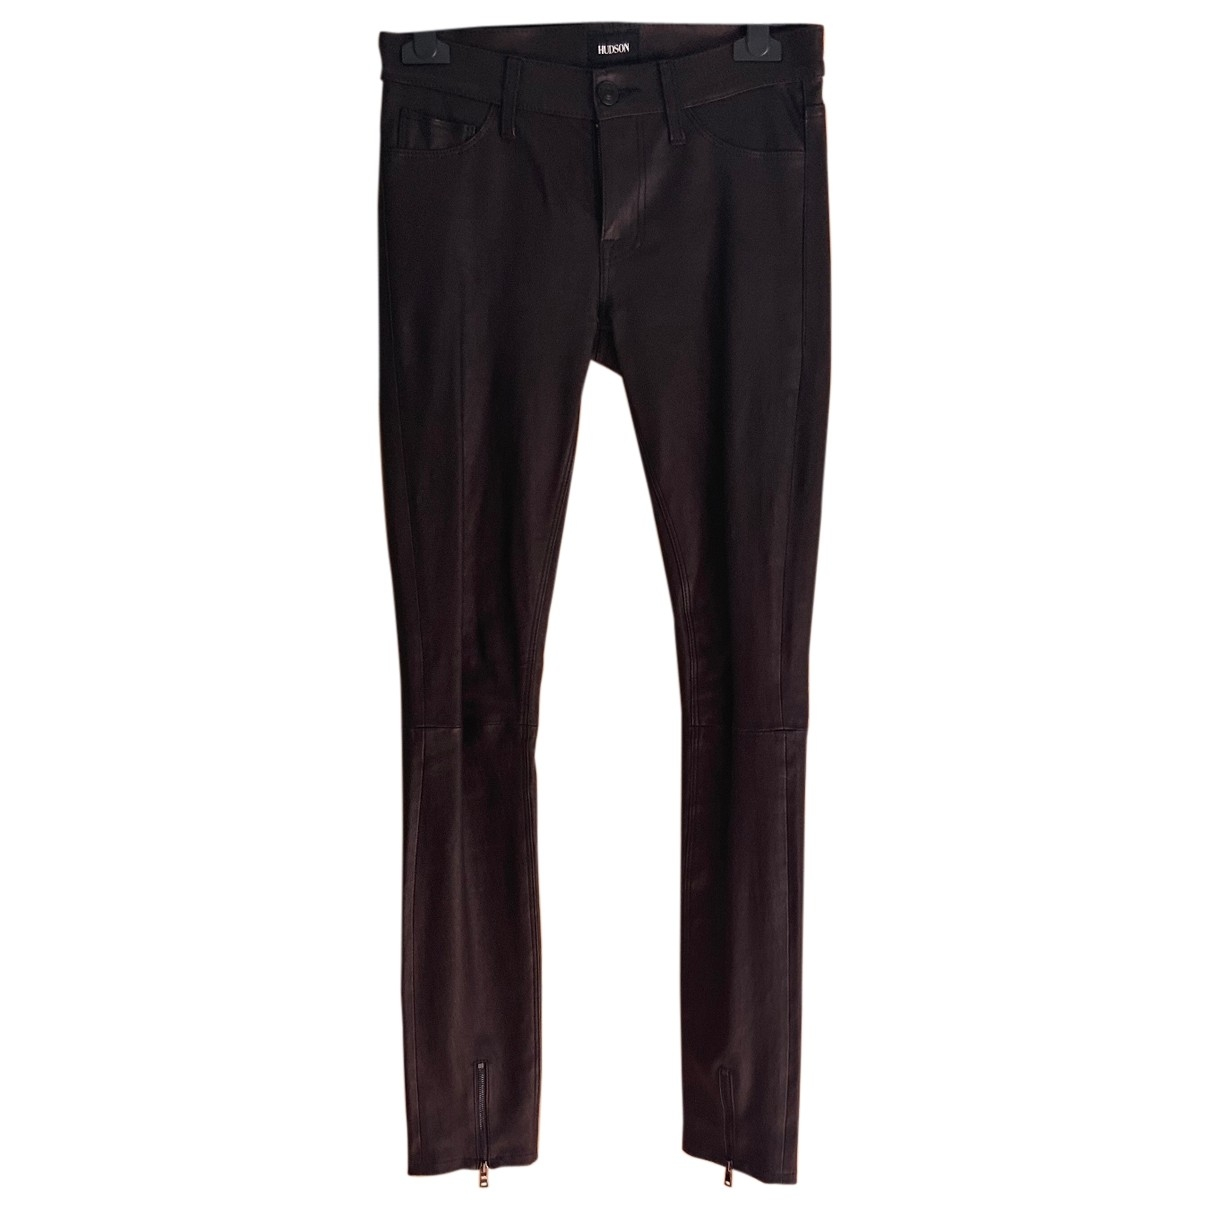 Hudson \N Black Leather Trousers for Women One Size US